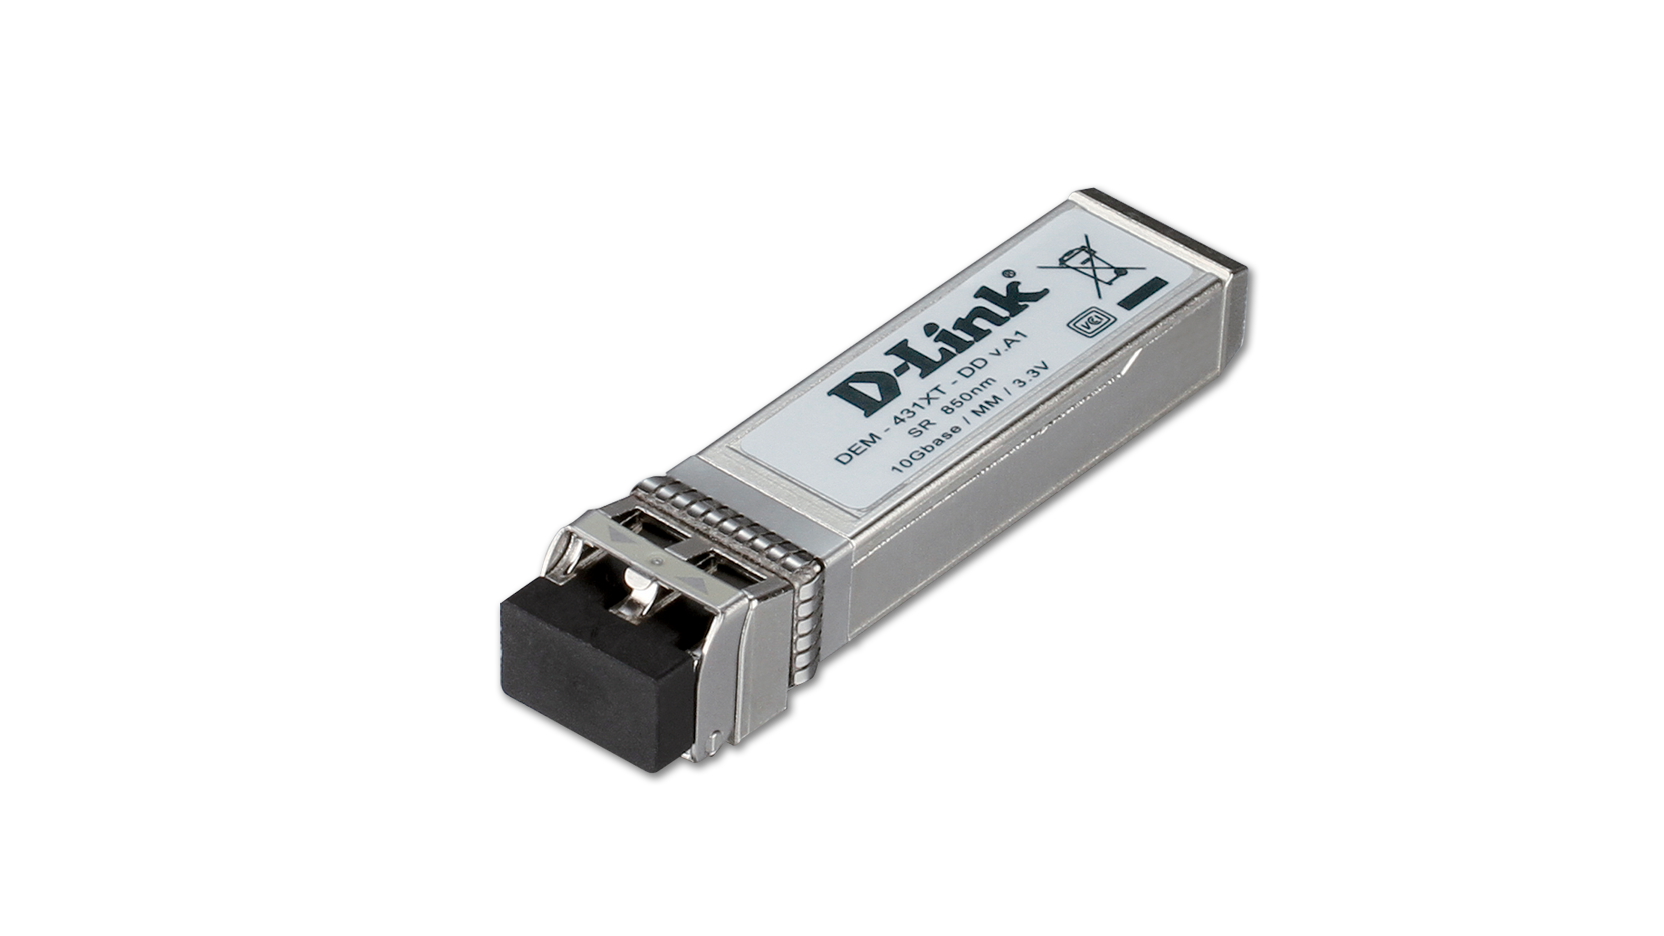 DEM-431XT 1-Port Gigabit PoE Splitter